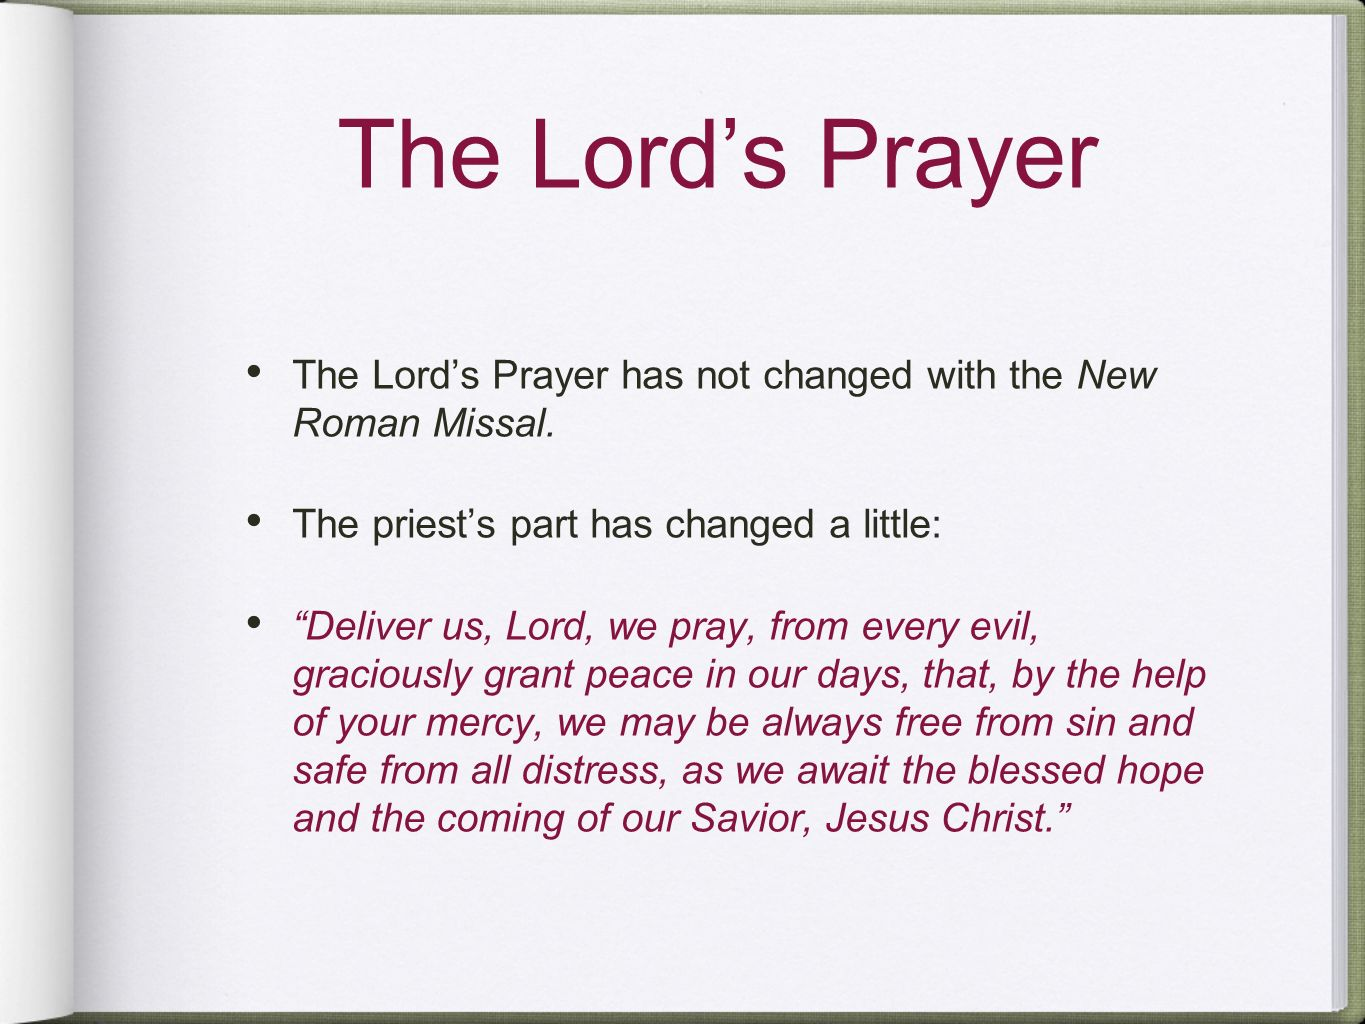 The Lord's Prayer The Lord's Prayer has not changed with the New Roman Missal. The priest's part has changed a little: